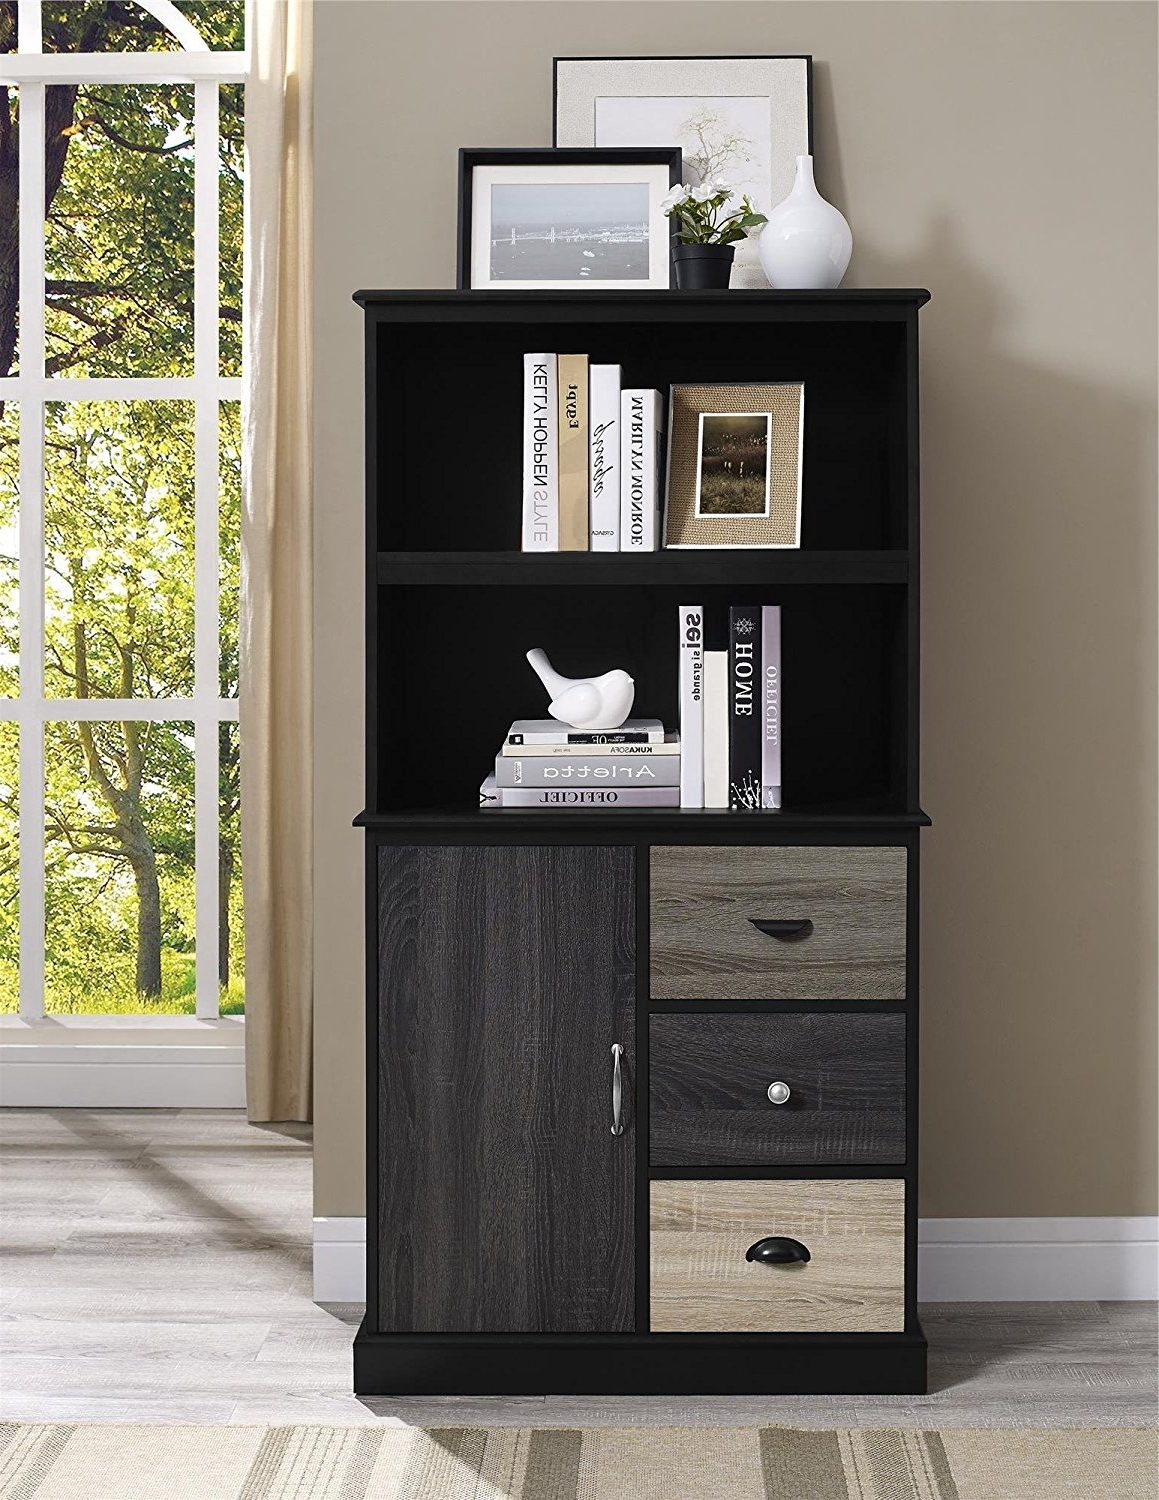 Storage Bookcases In Well Known Amazon: Ameriwood Home Mercer Storage Bookcase With (View 1 of 15)